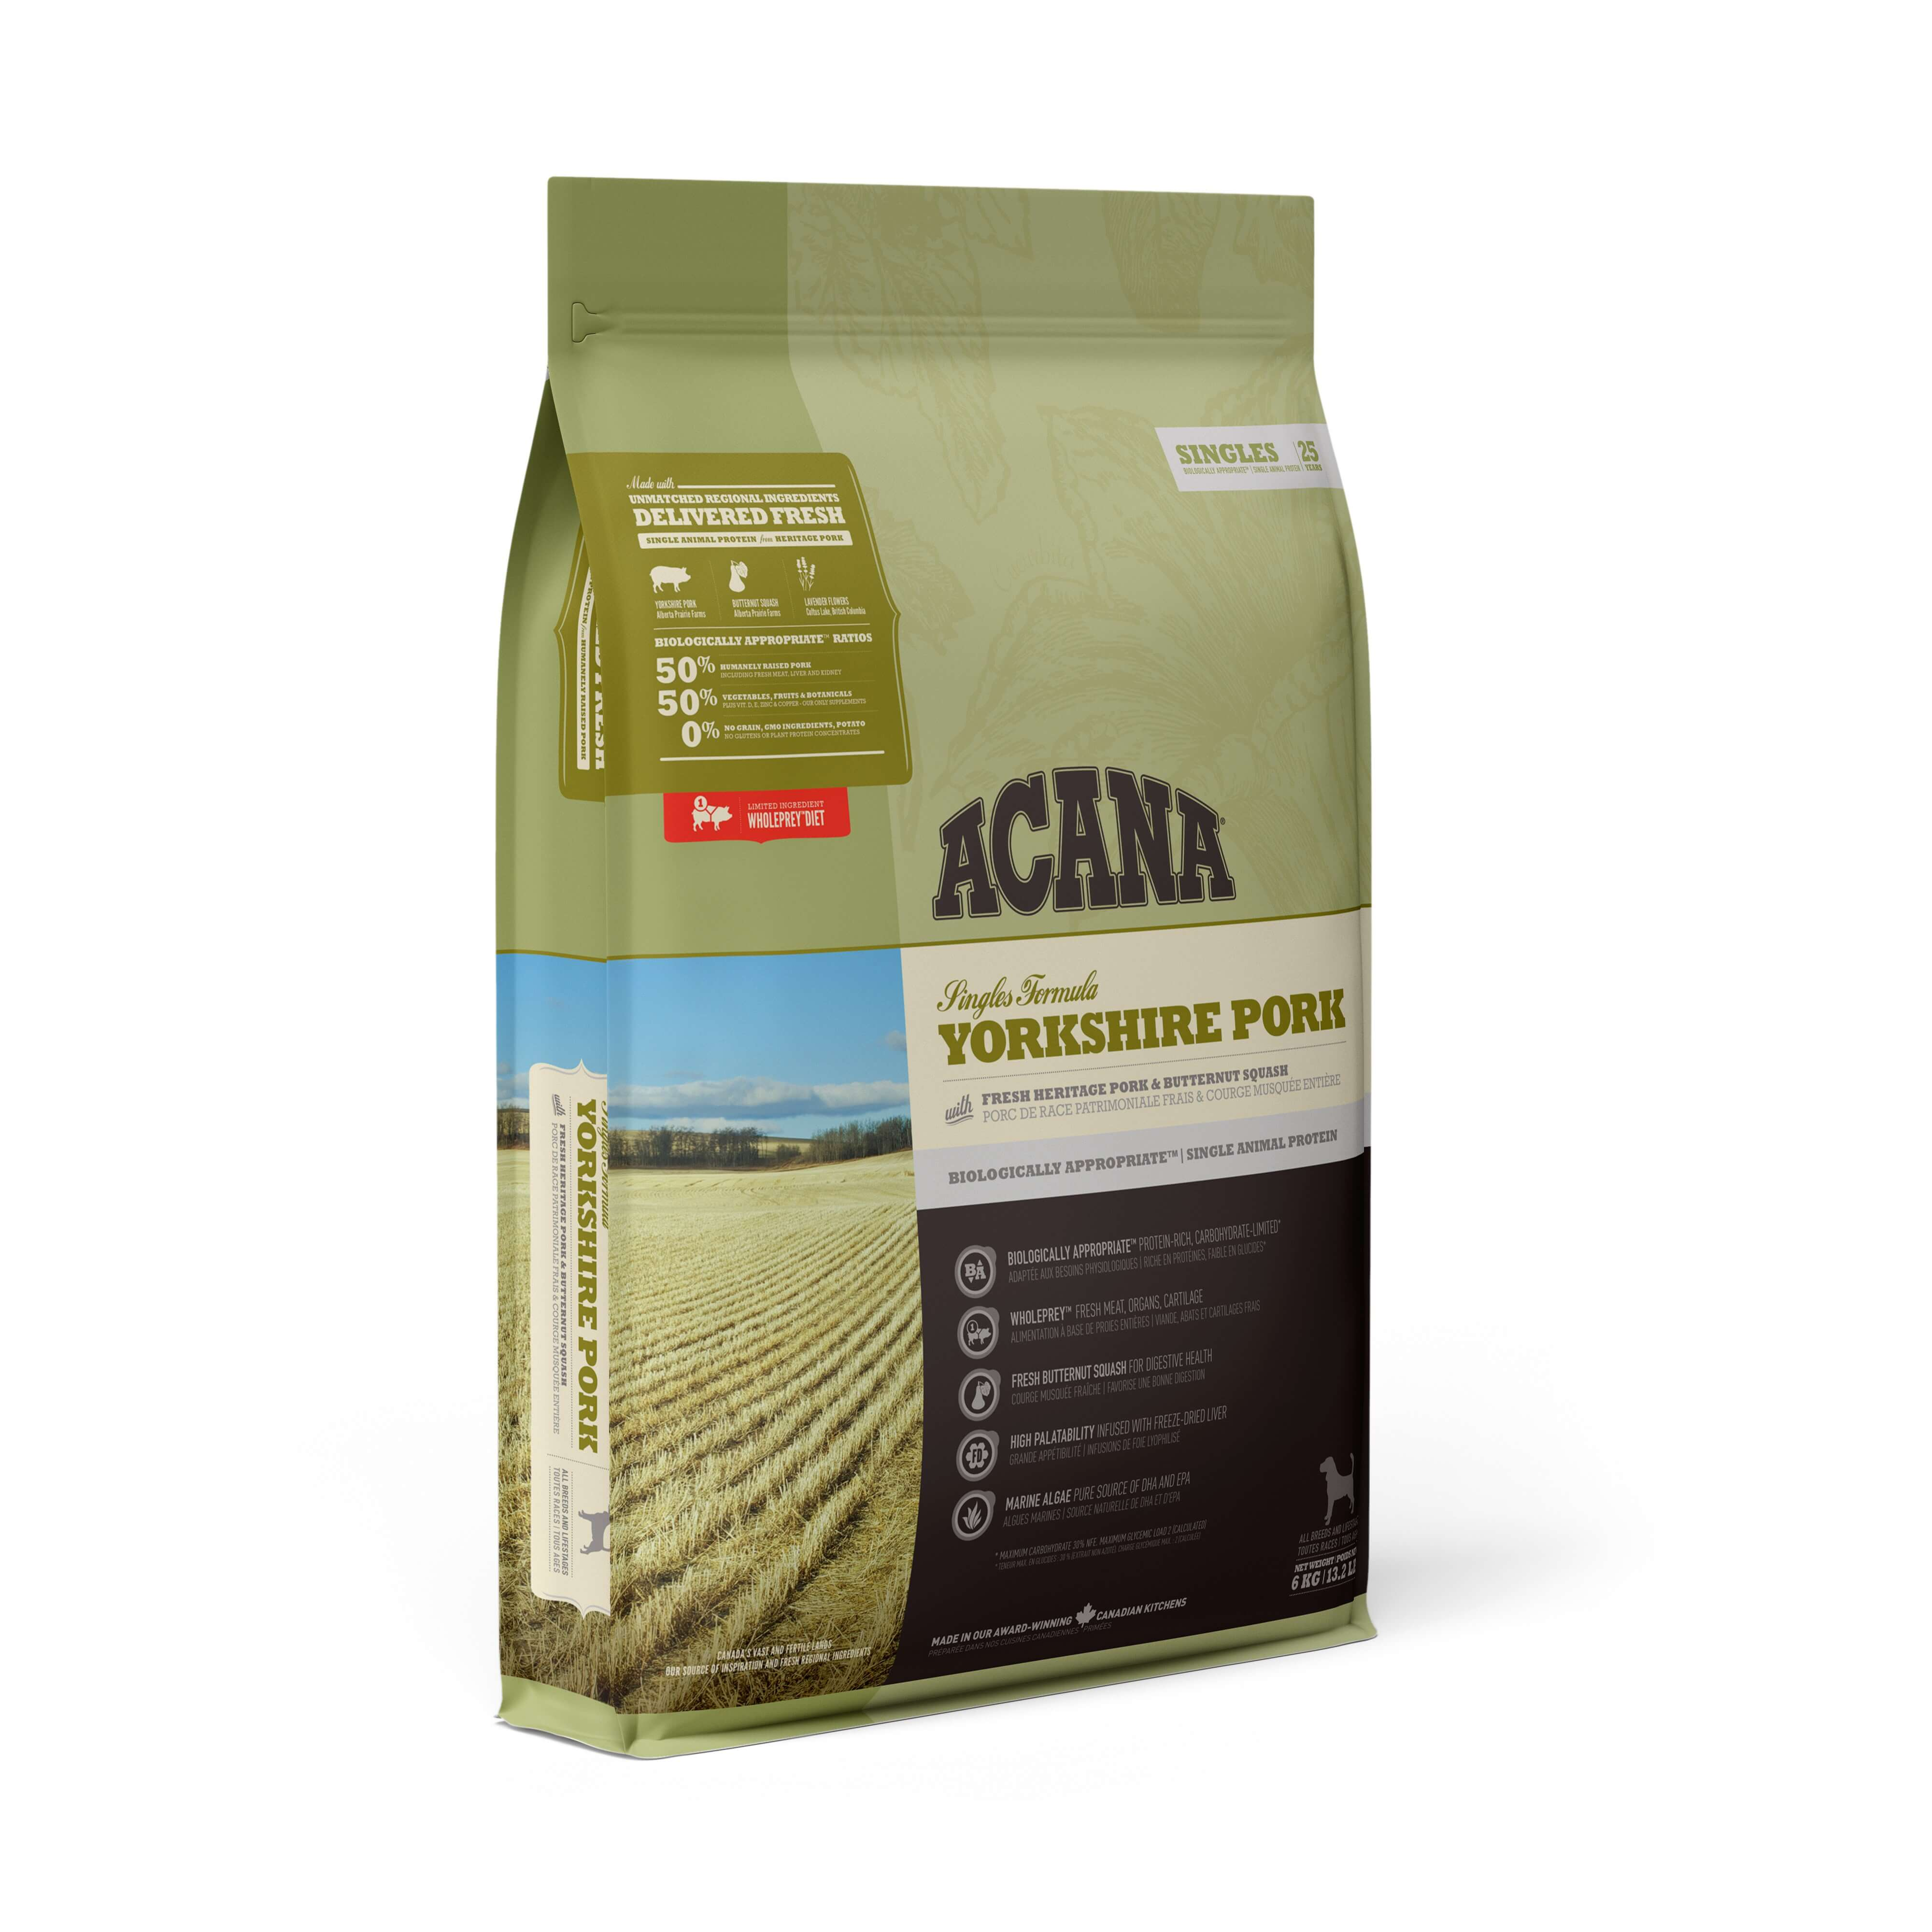 Acana Yorkshire Pork | 2kg - Click to enlarge picture.